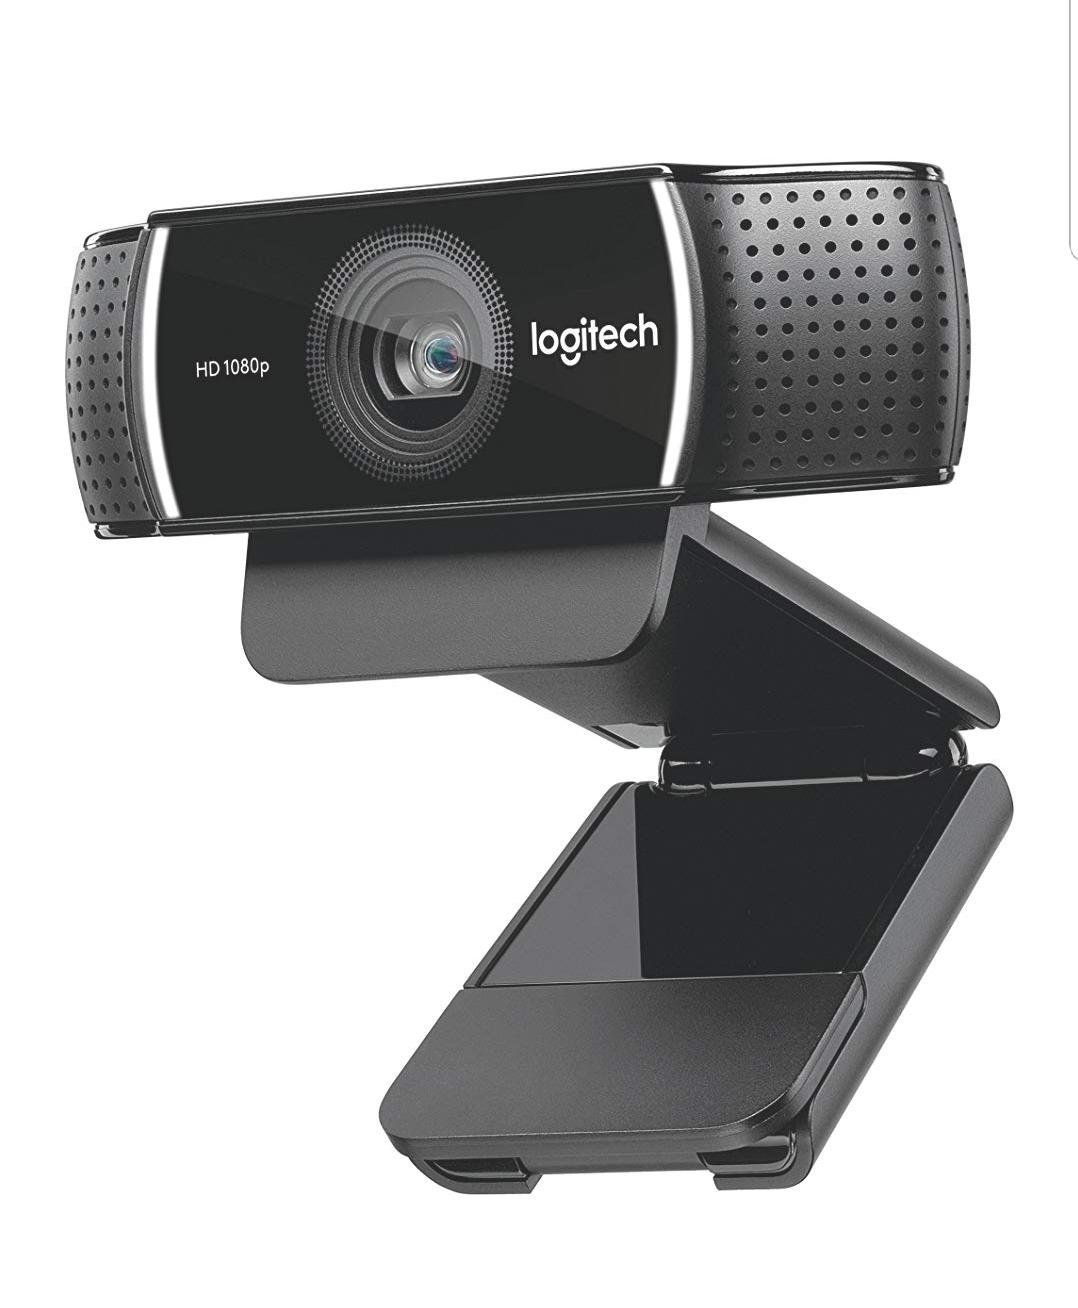 Logitech C922x Pro Stream Webcam 960-001176 – Full 1080p HD Camera – Background Replacement Technology for YouTube or Twitch Streaming